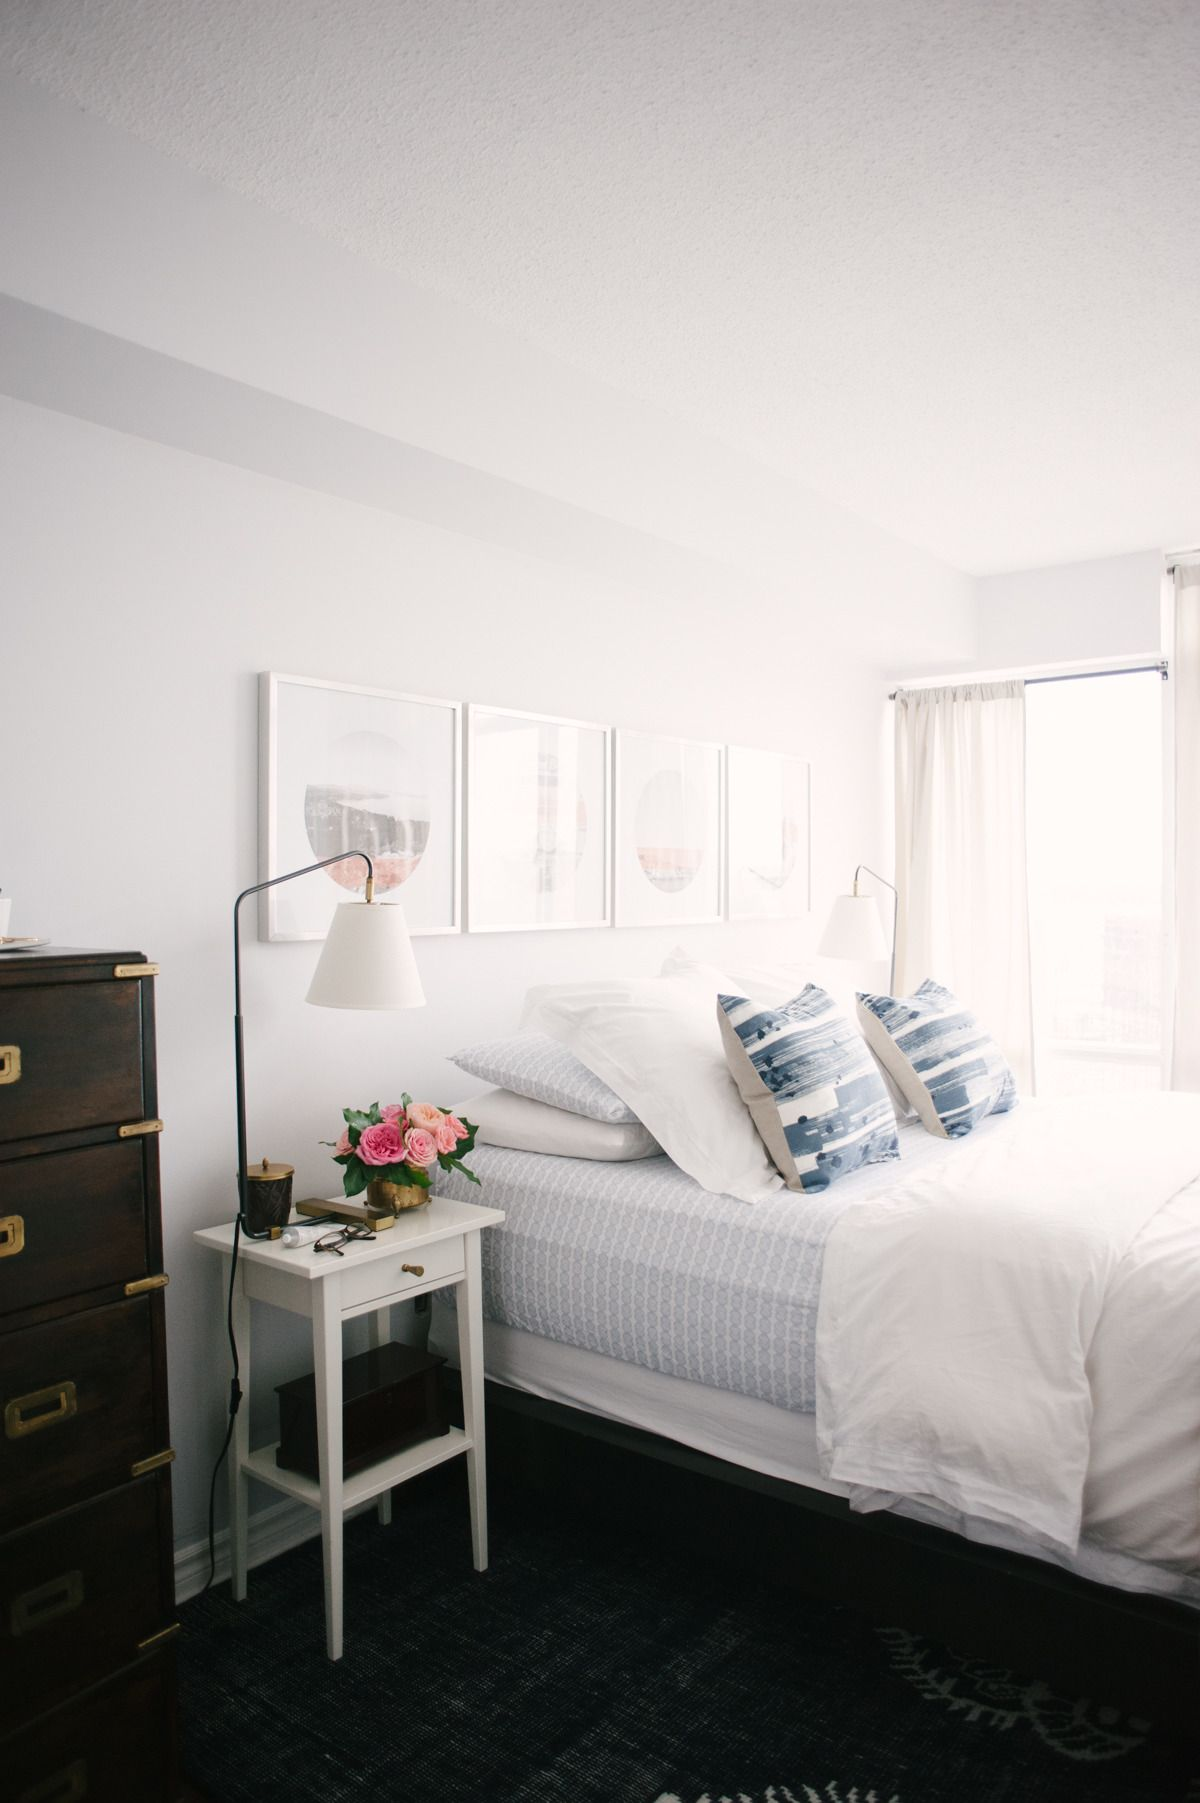 A Cozy Bedroom Can Make World Of Difference Let These 10 Rooms Inspire Your Next Redesign